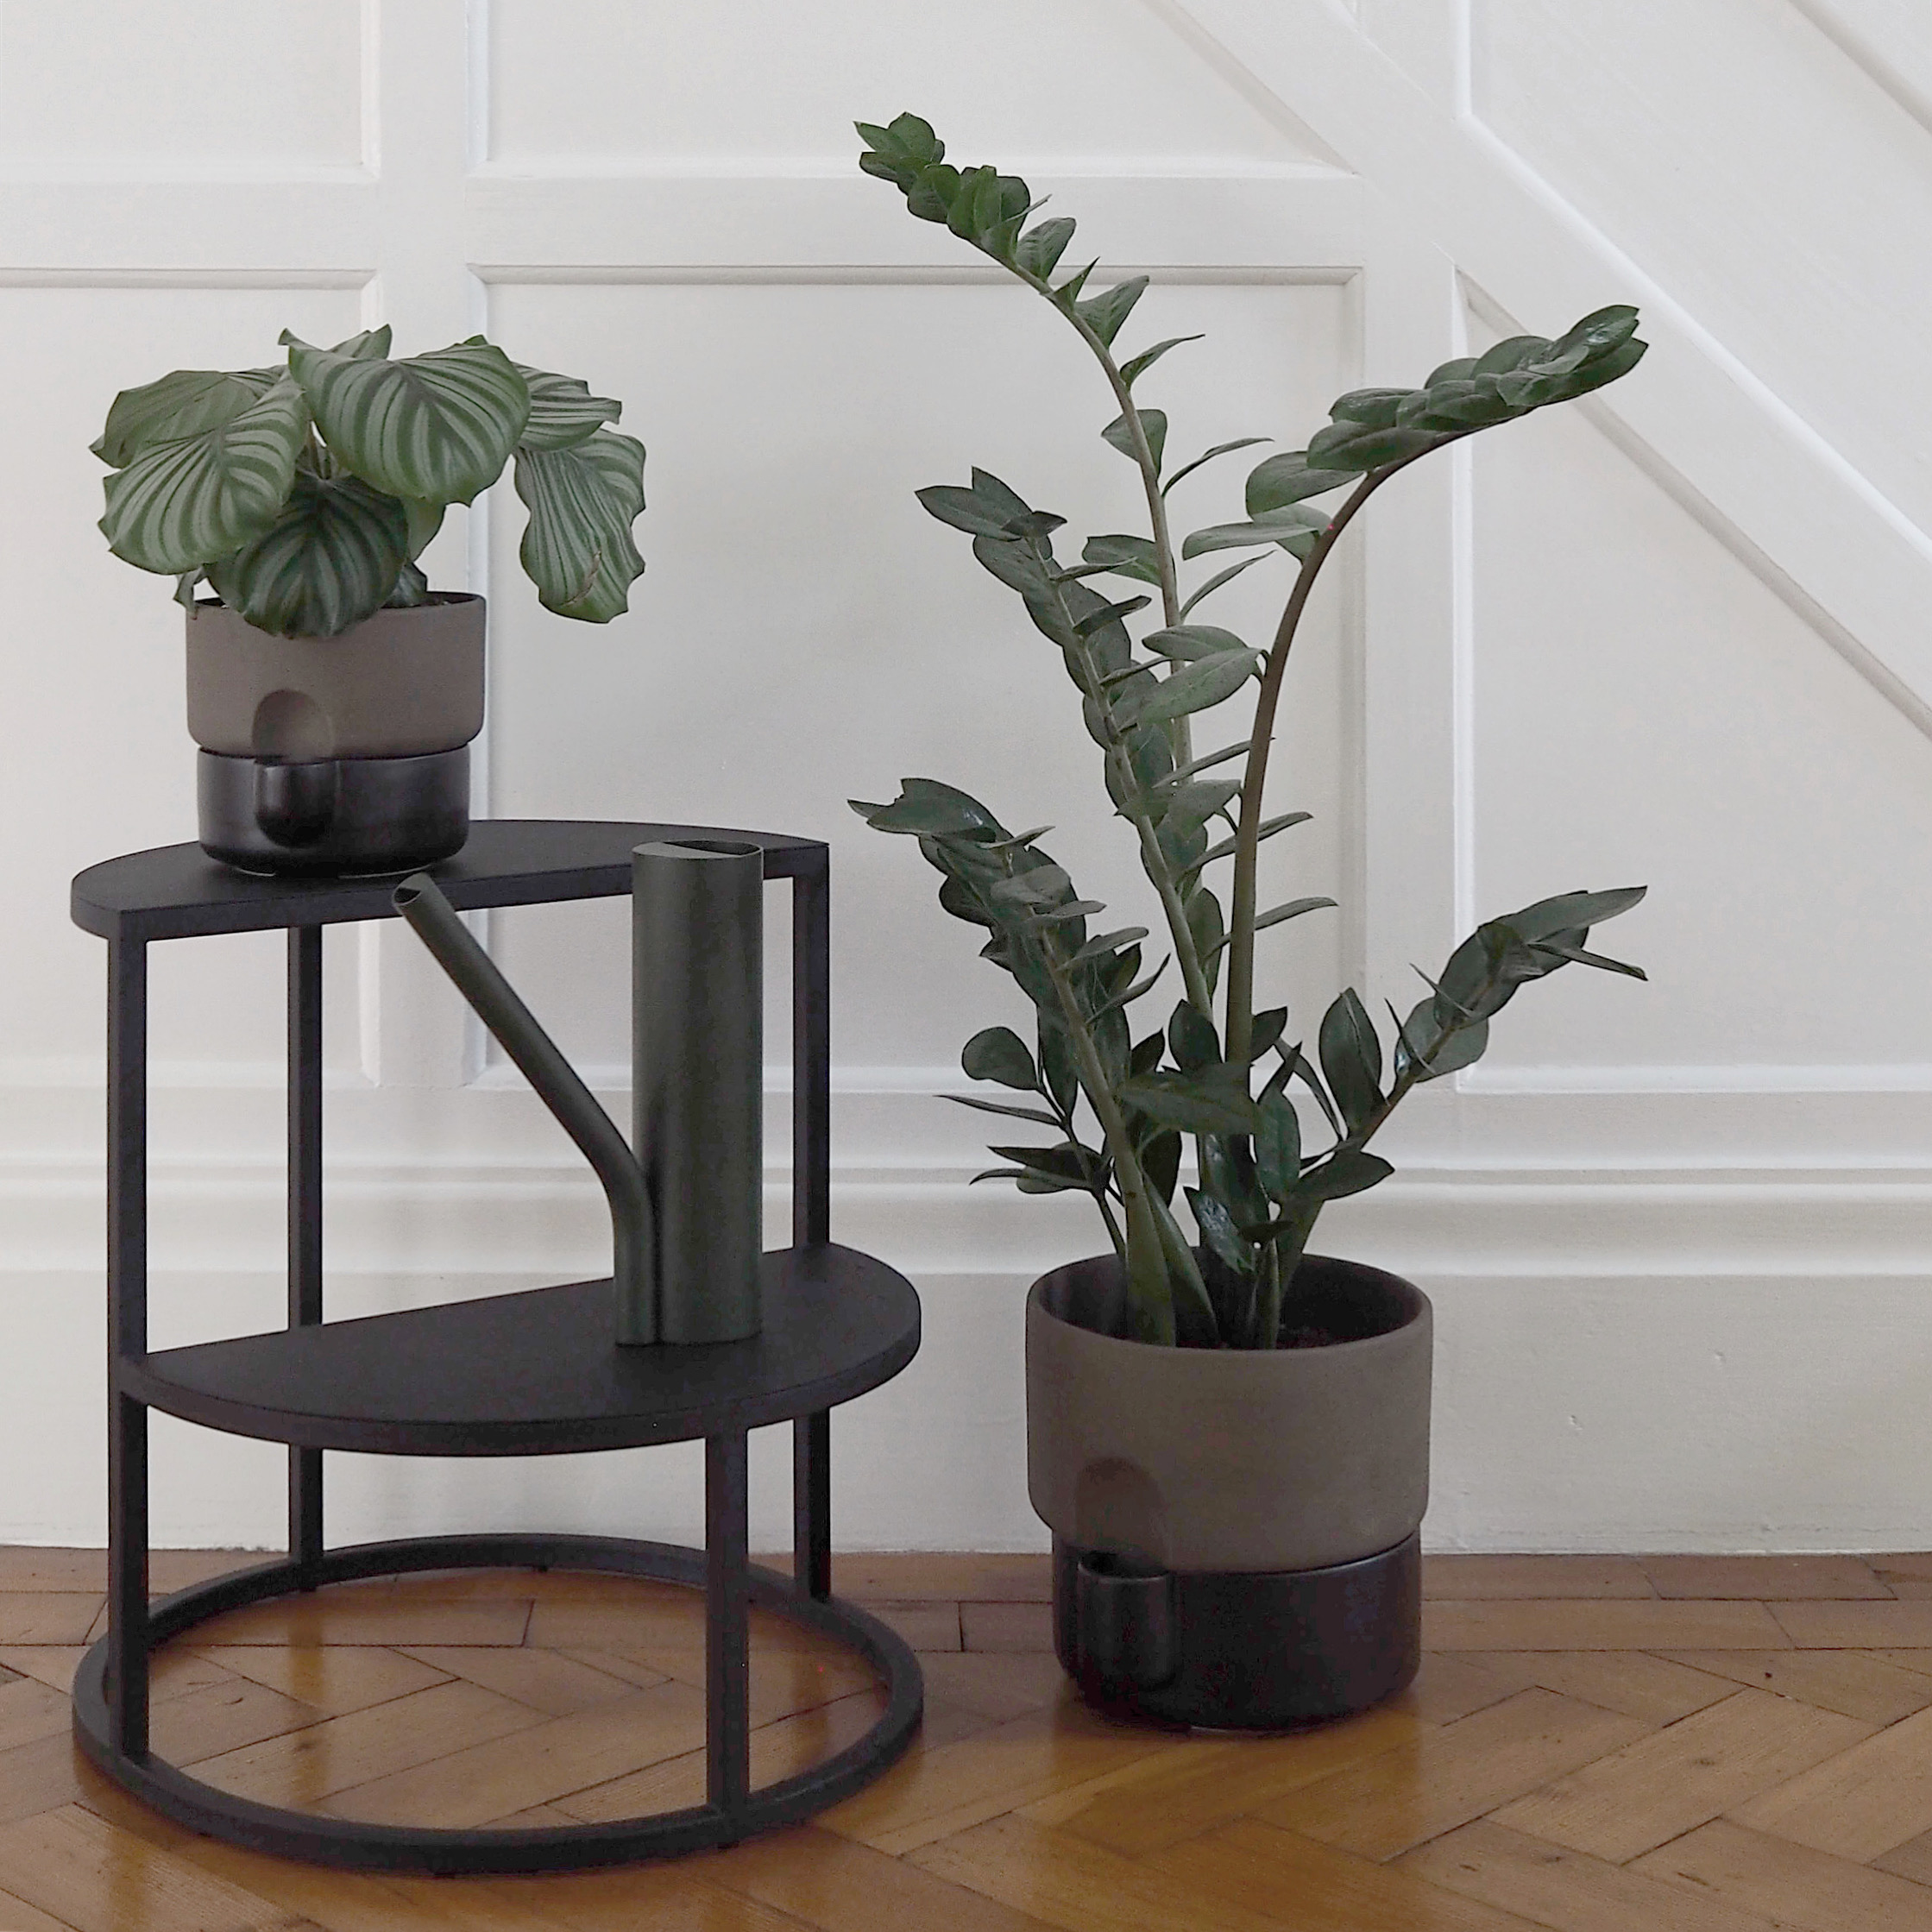 Northern_Oasis_self-watering_flowerpot_Dais_stepstool_Holiday-Care-for-Houseplants_Nicola_Capper.jpg